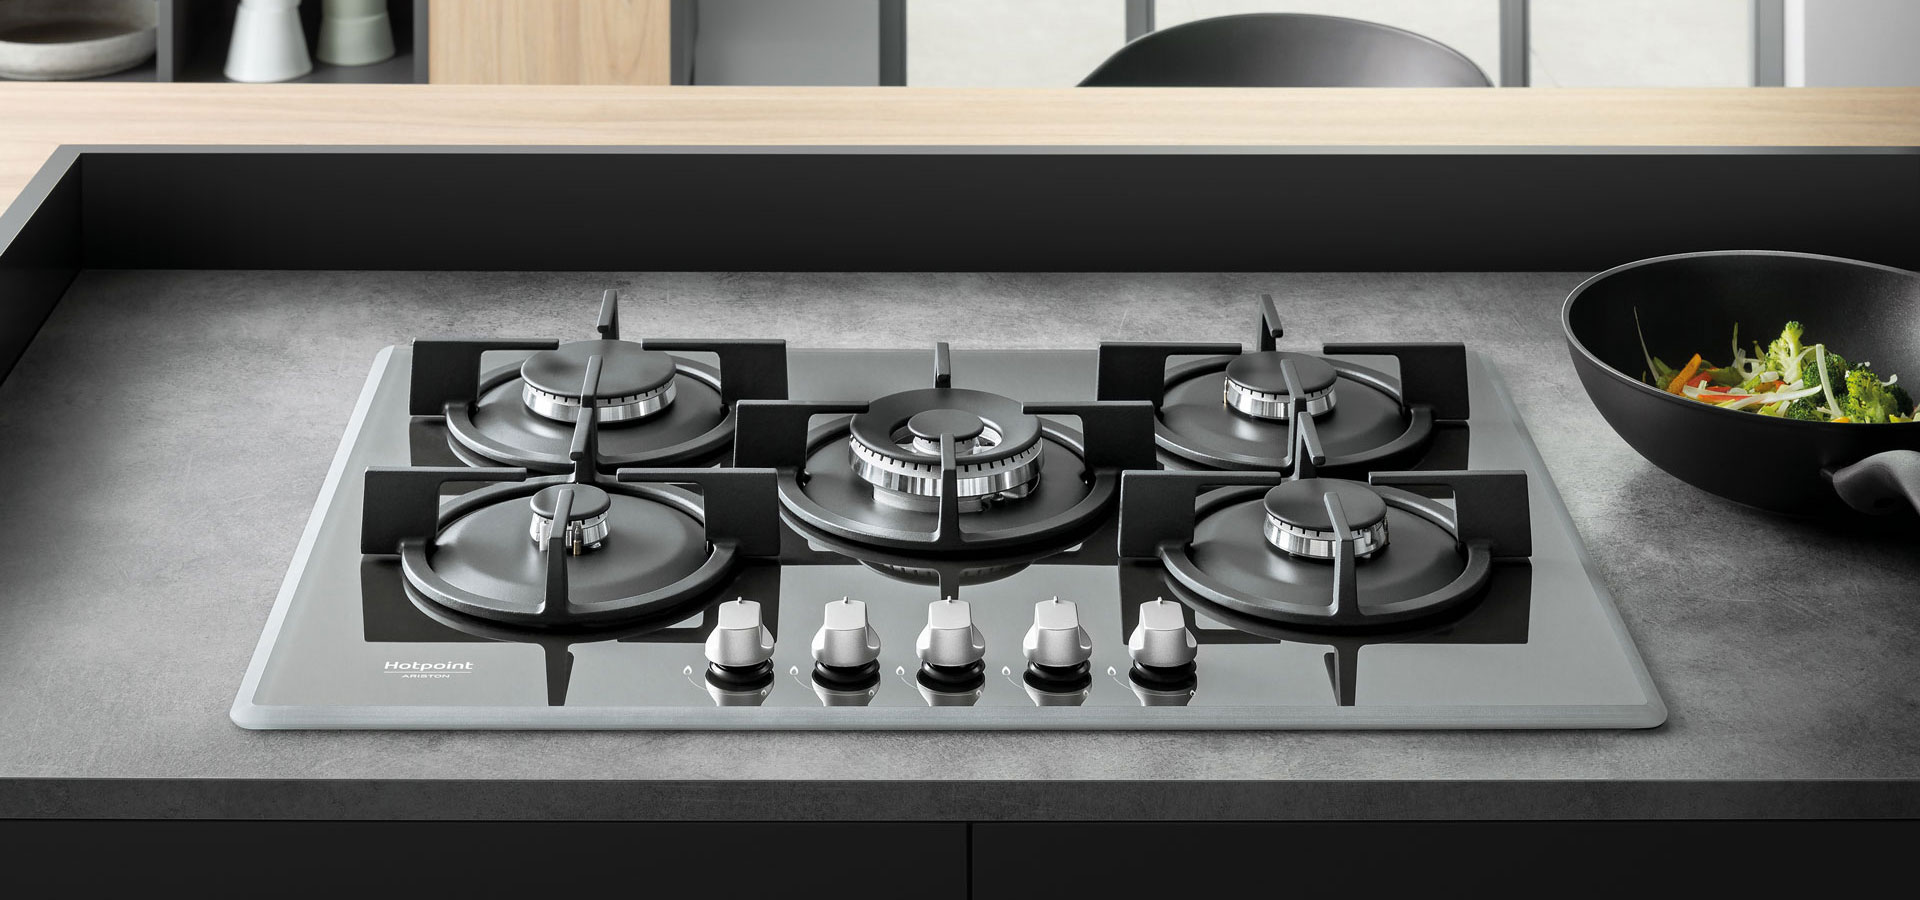 Cutting-edge design and materials in gas hobs by Hotpoint - Cucine LUBE